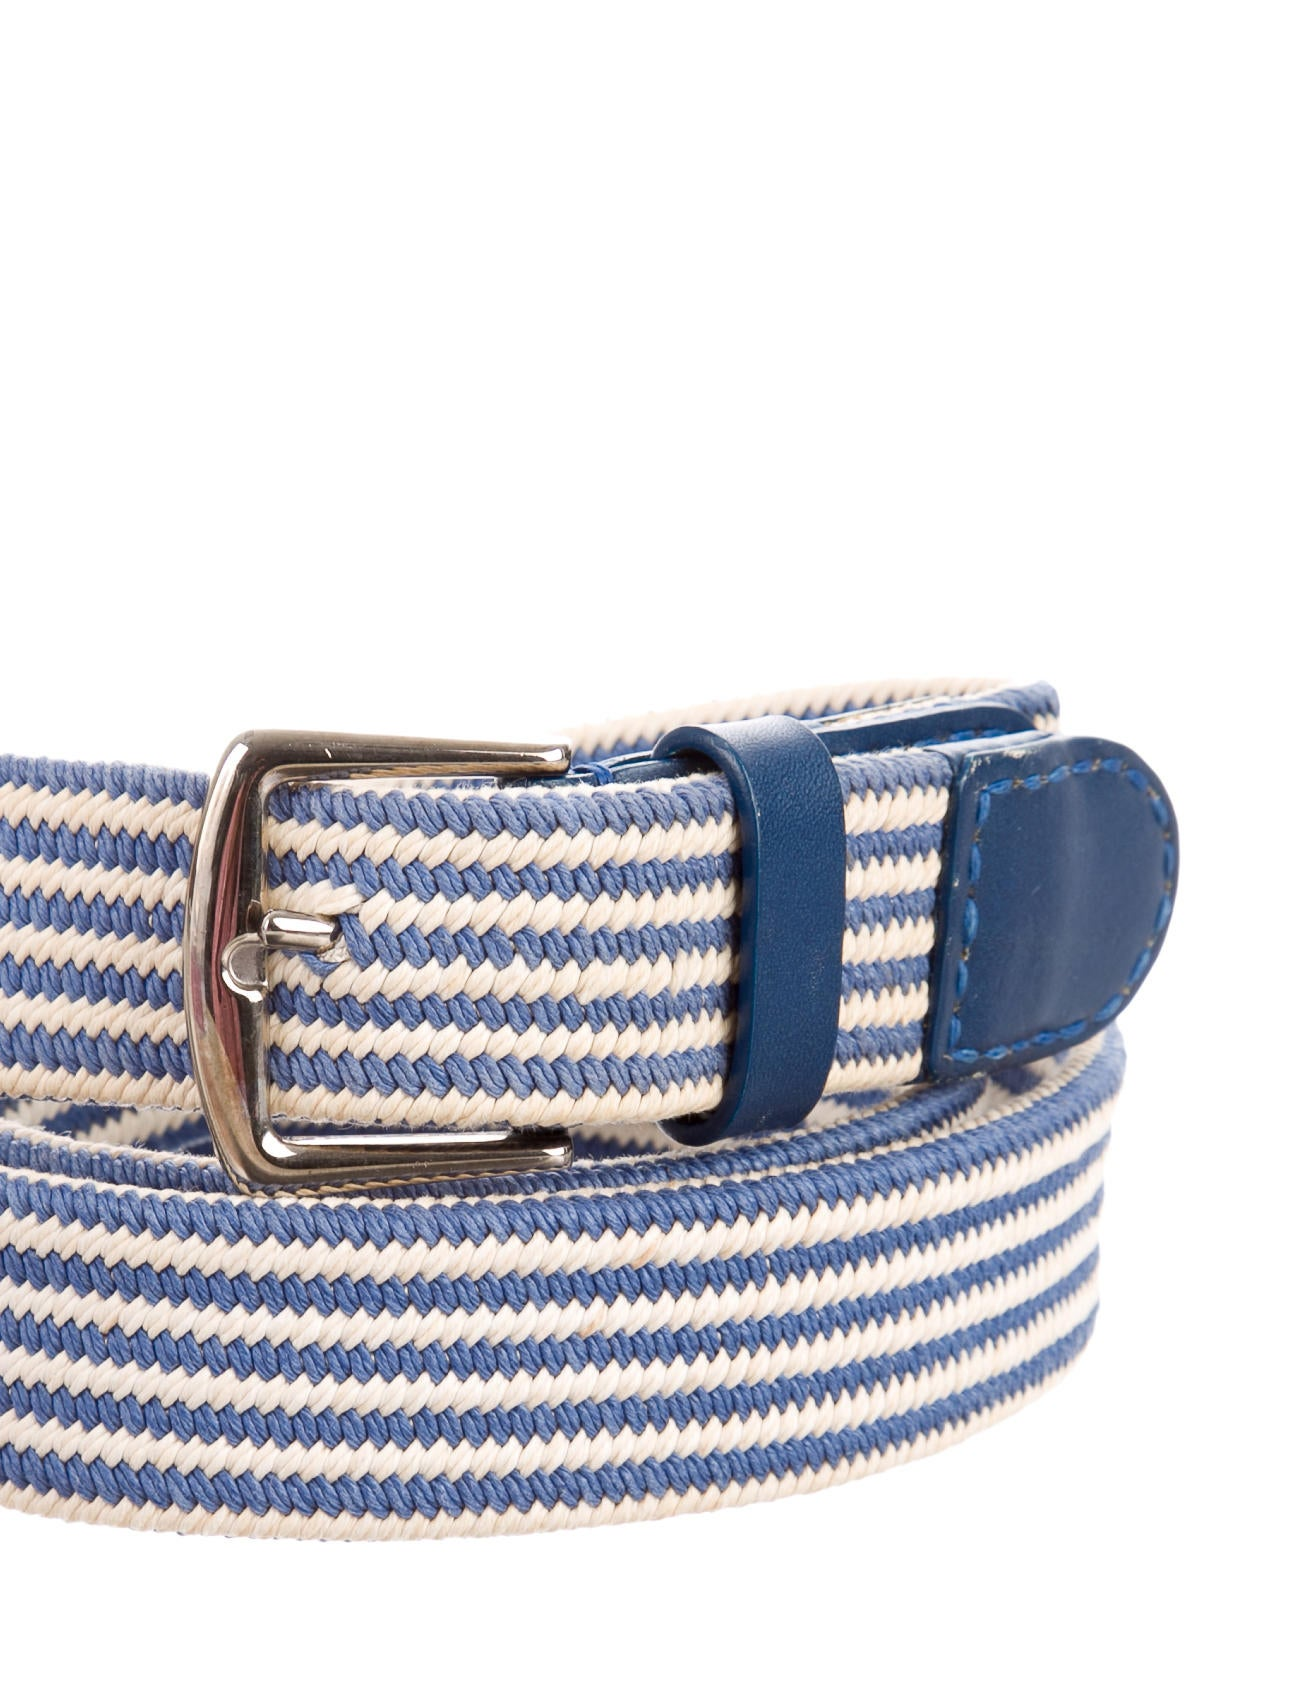 loro piana leather trimmed woven belt accessories